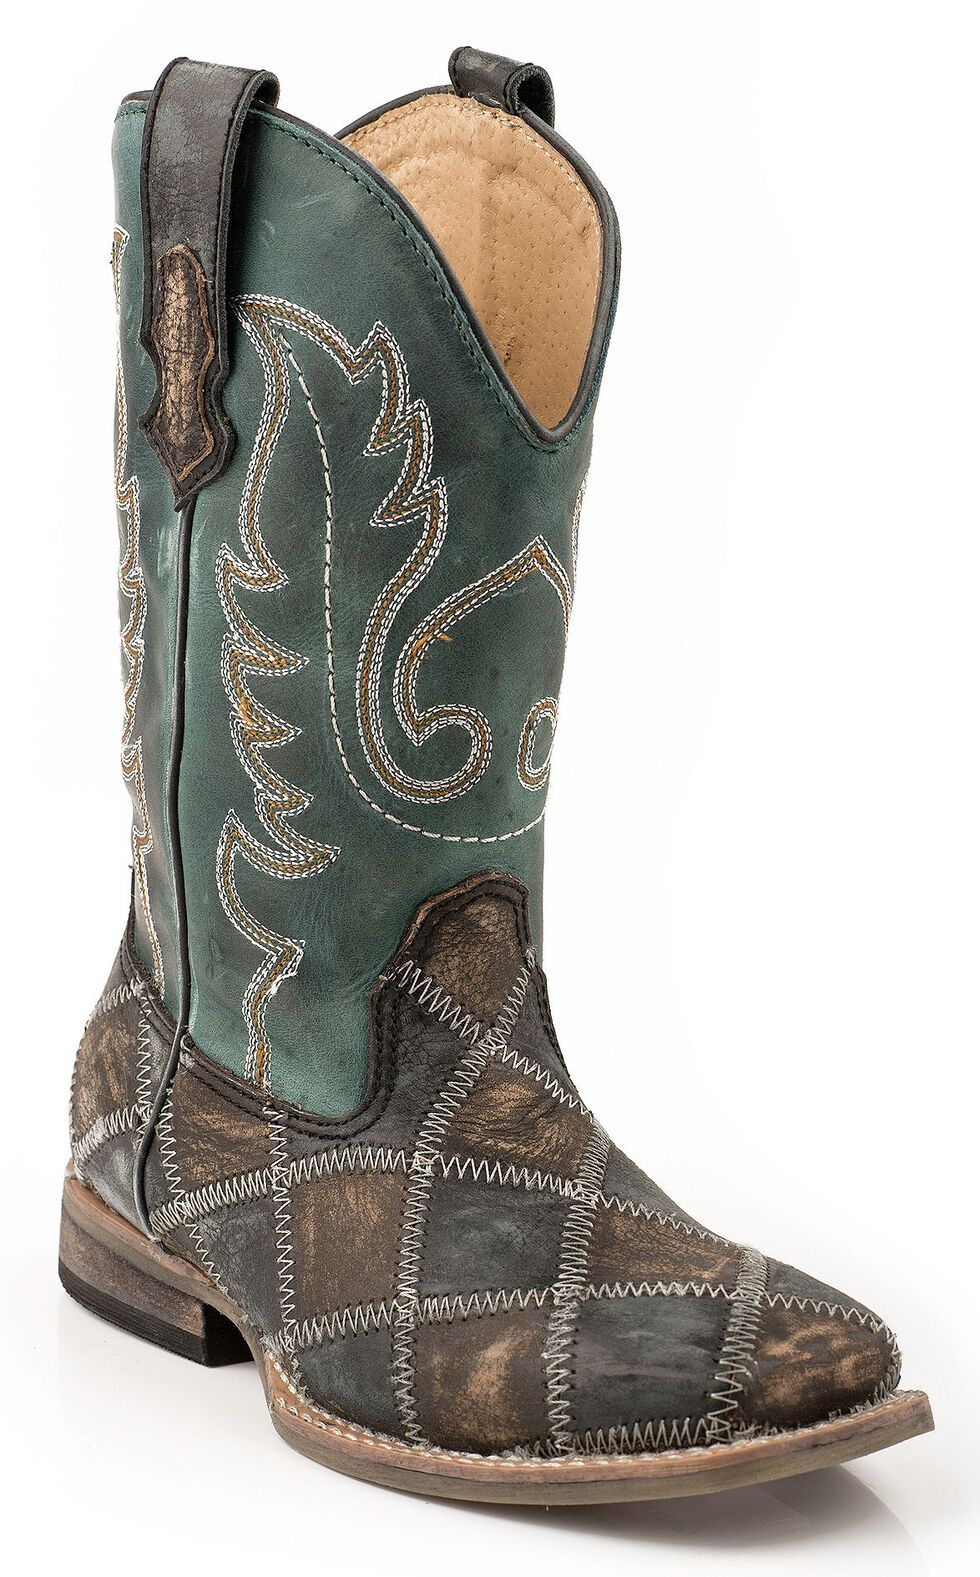 Roper Boys' Patchwork Cowboy Boots - Square Toe, Distressed, hi-res